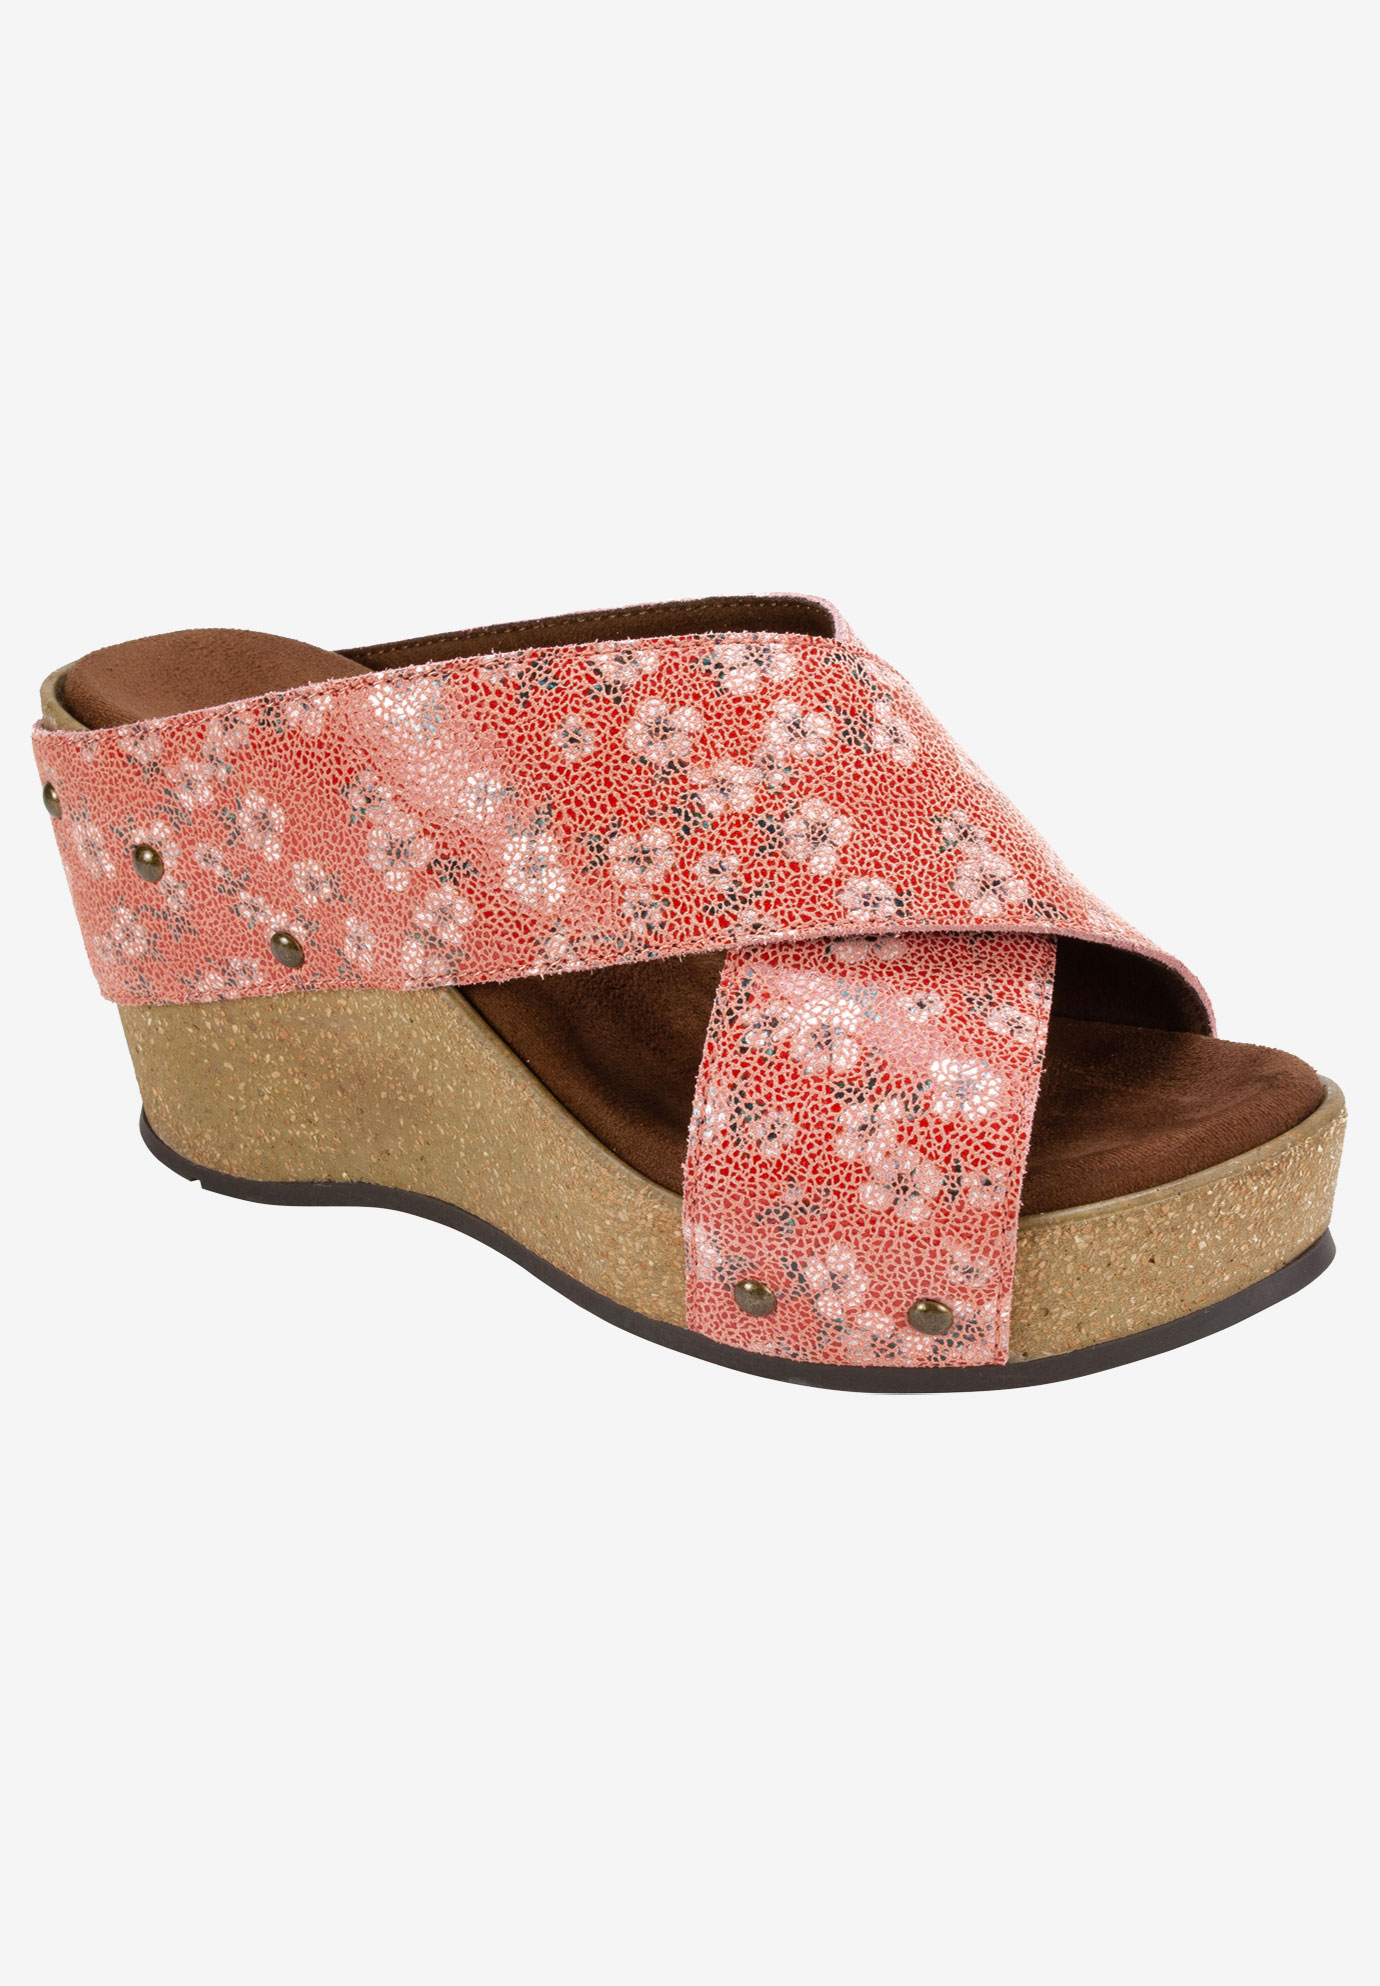 Cuttler Sandal by White Mountain,